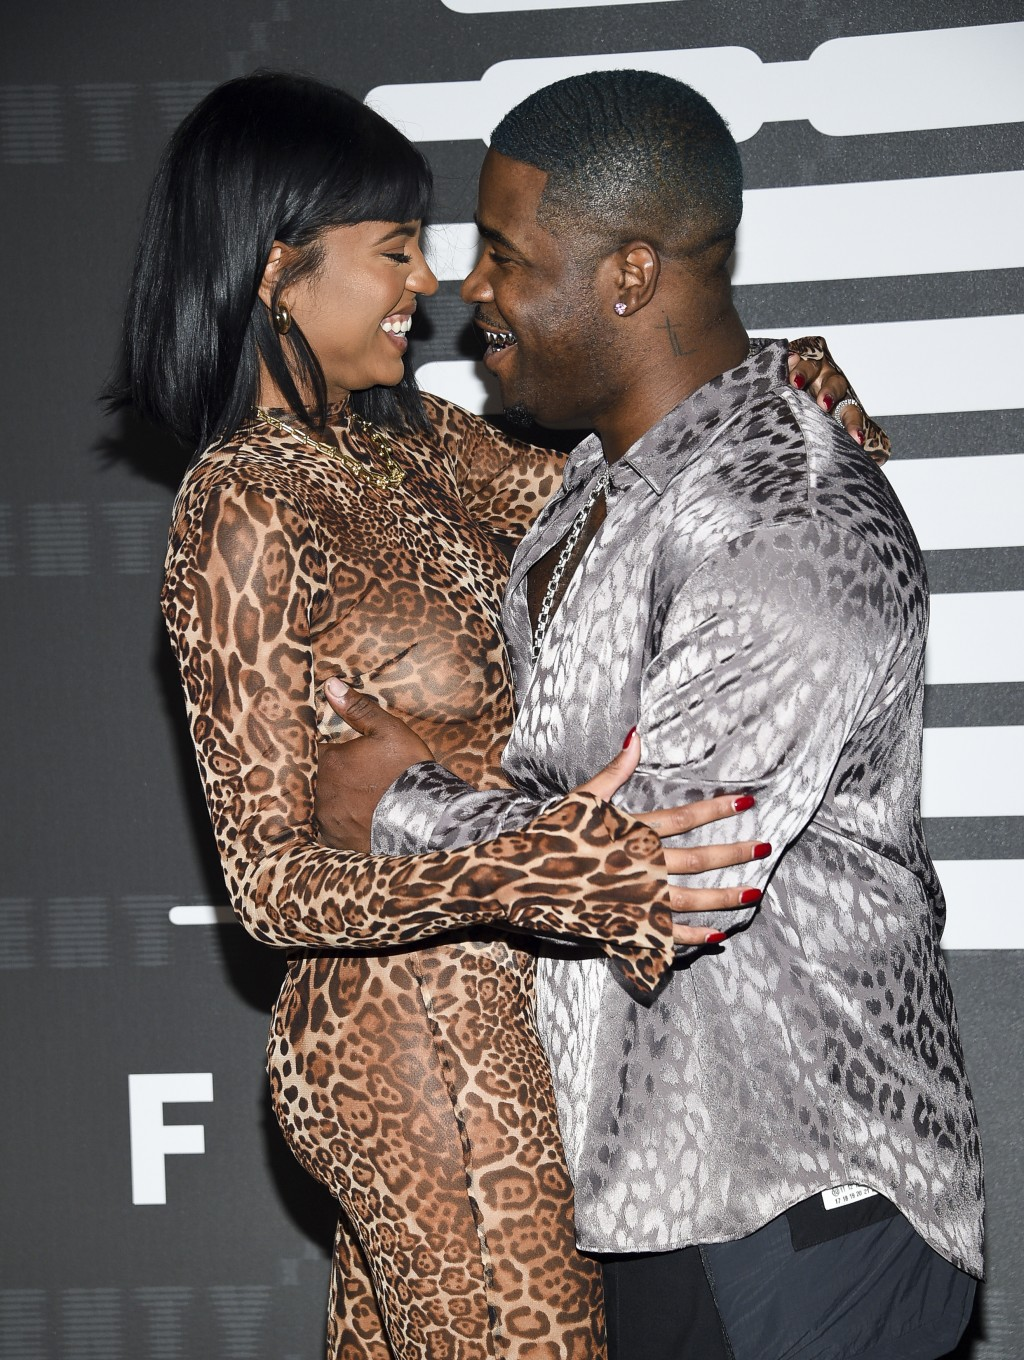 Rapper A$AP Ferg, right, and girlfriend Renell Medrano attend the Spring/Summer 2020 Savage X Fenty show, presented by Amazon Prime, at the Barclays C